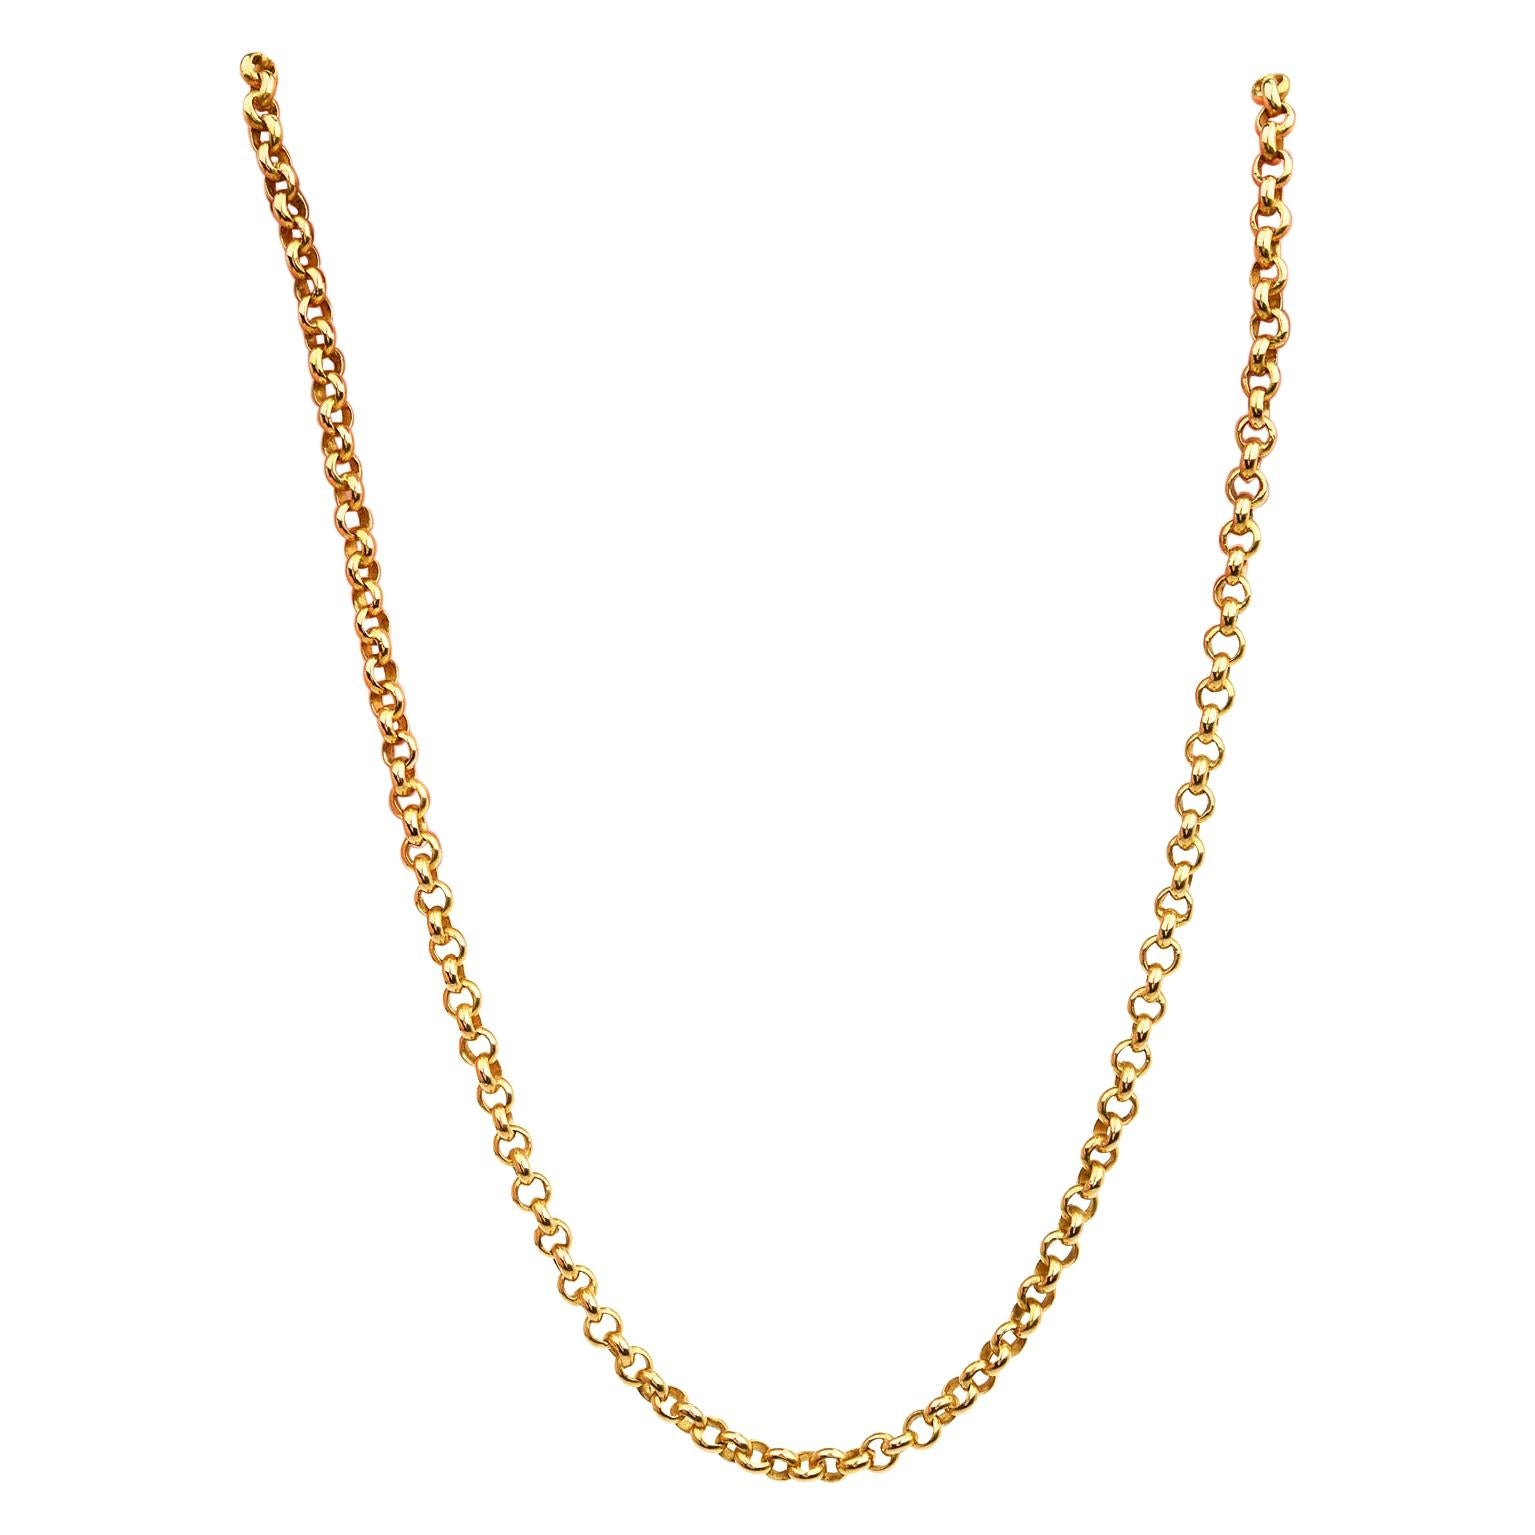 Vintage 18k Yellow Gold Round Link Chain Necklace